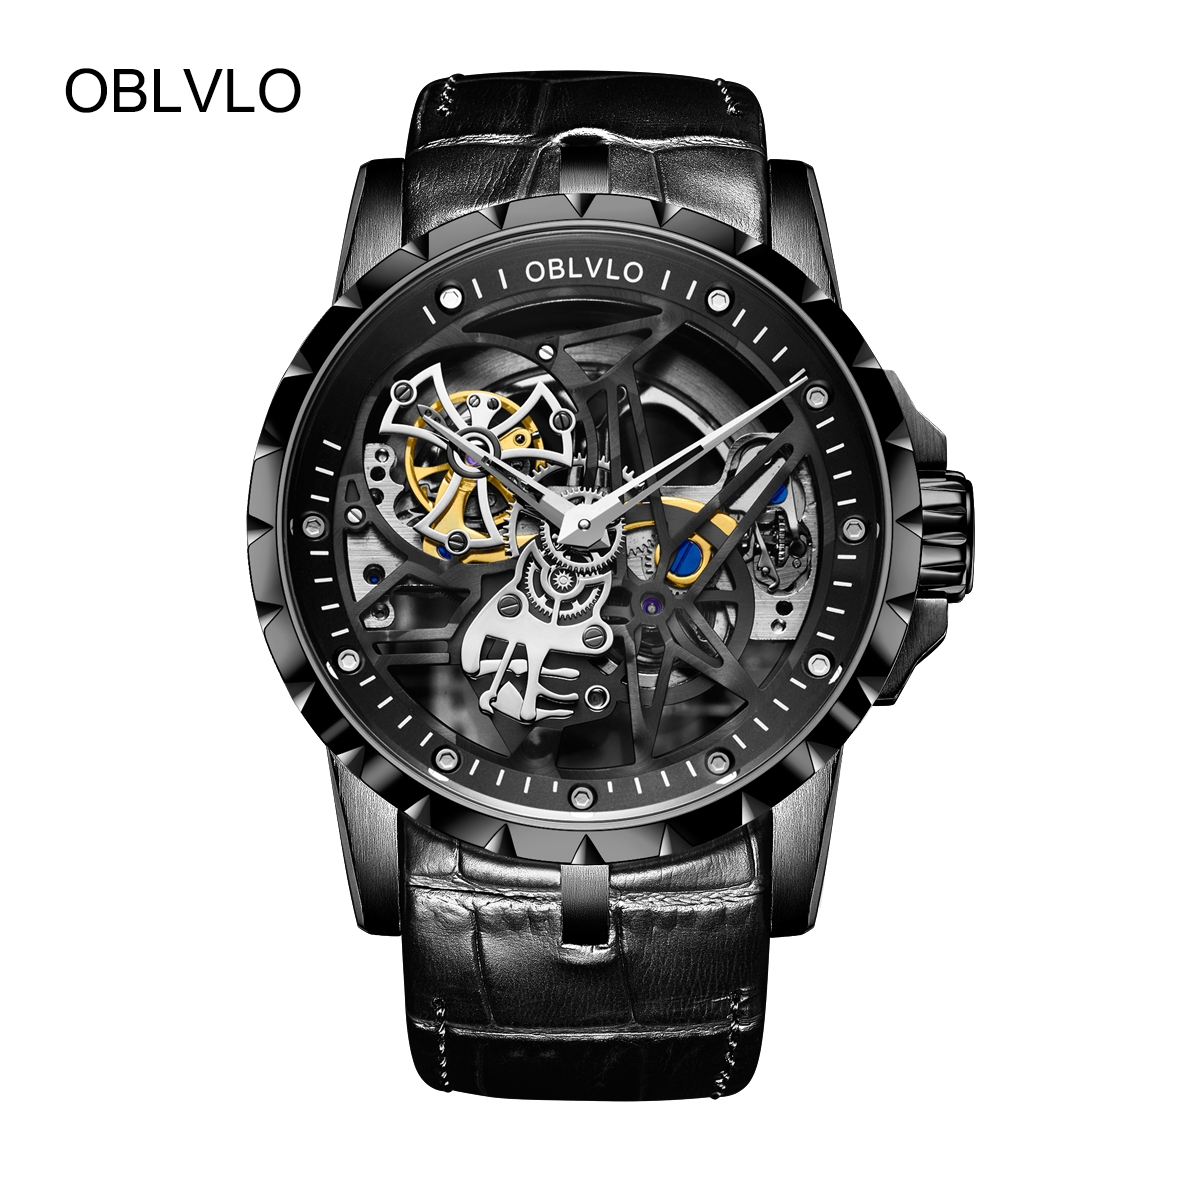 OBLVLO Mens Skeleton Watches Black PVD Watches Leather Strap Tourbillon Automatic Watch OBL3603BSBB